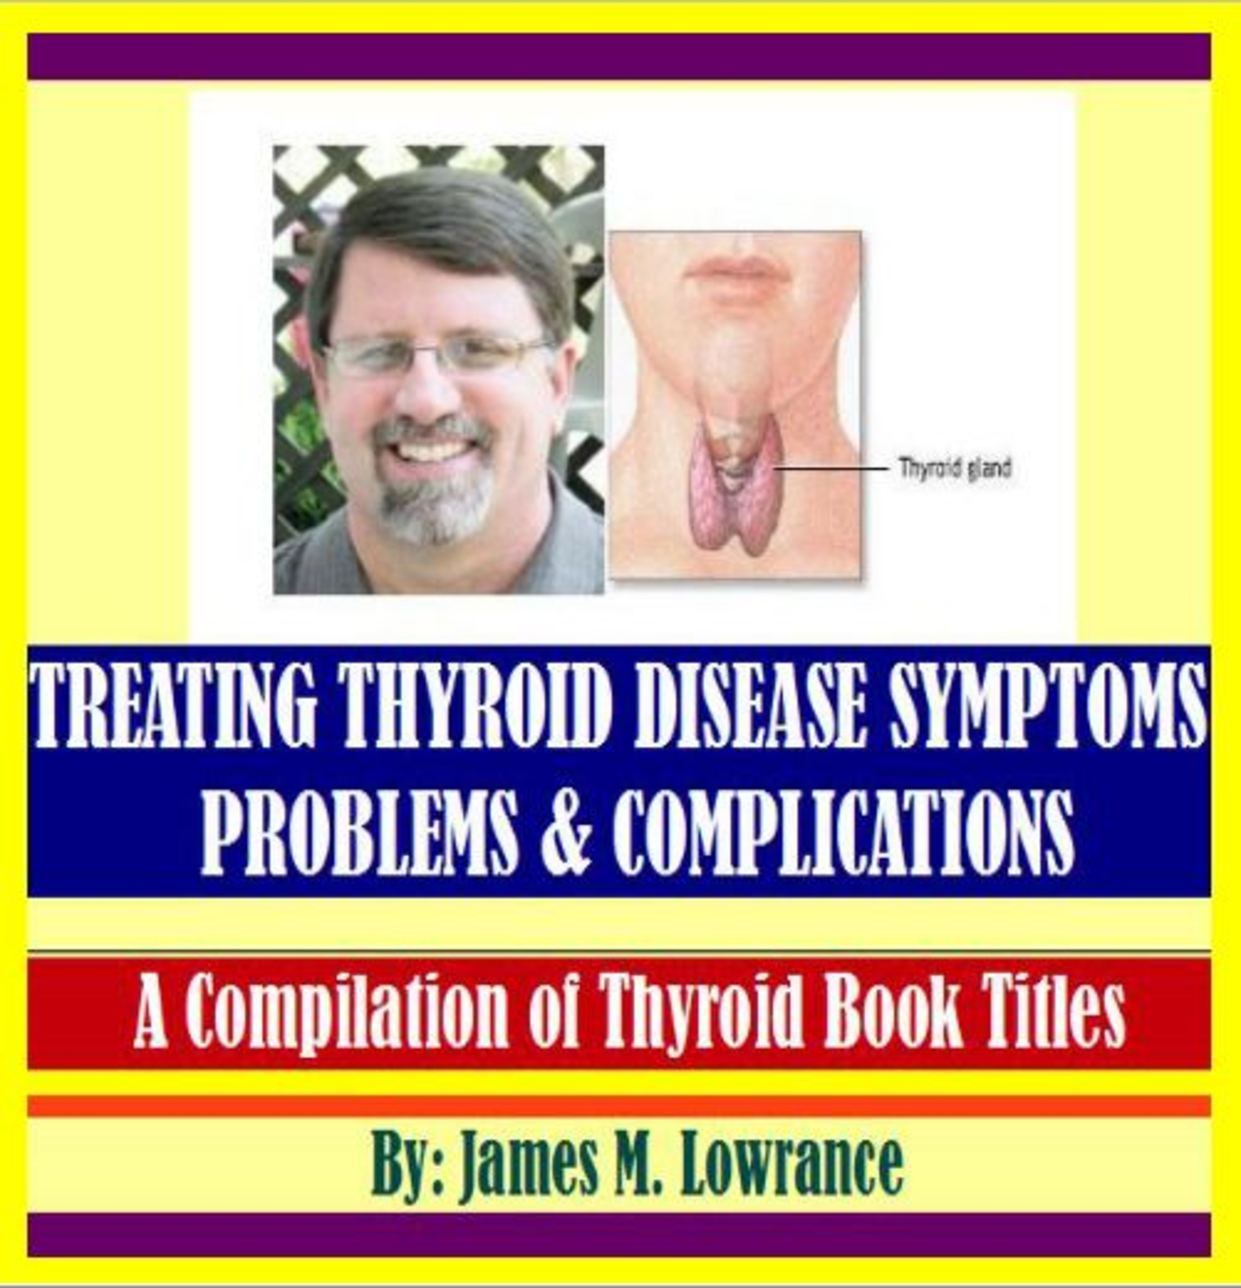 Treating Thyroid Disease Symptoms, Problems and Complications